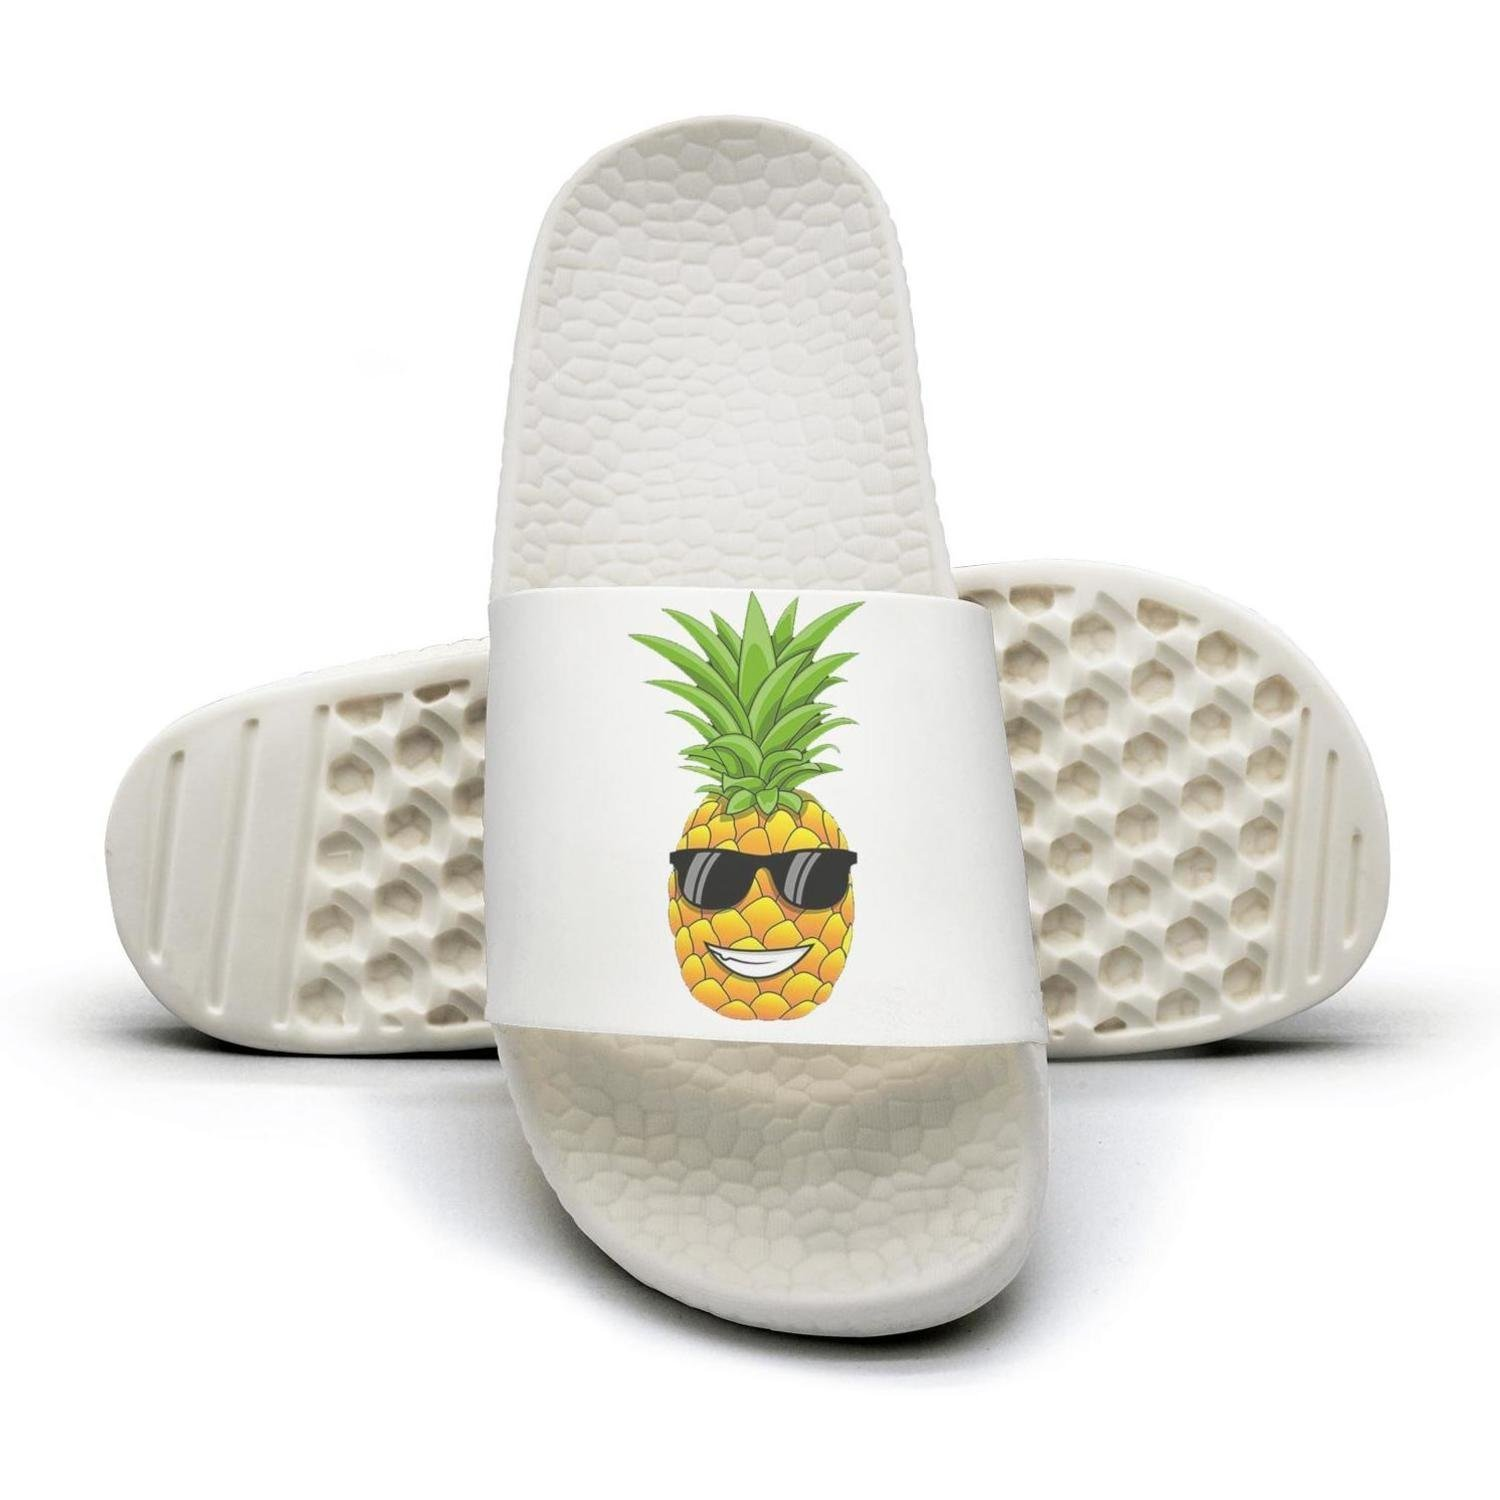 WooWe Hawaiian Pineapple sunglasses mens Fashion Slippers Sandals Casual